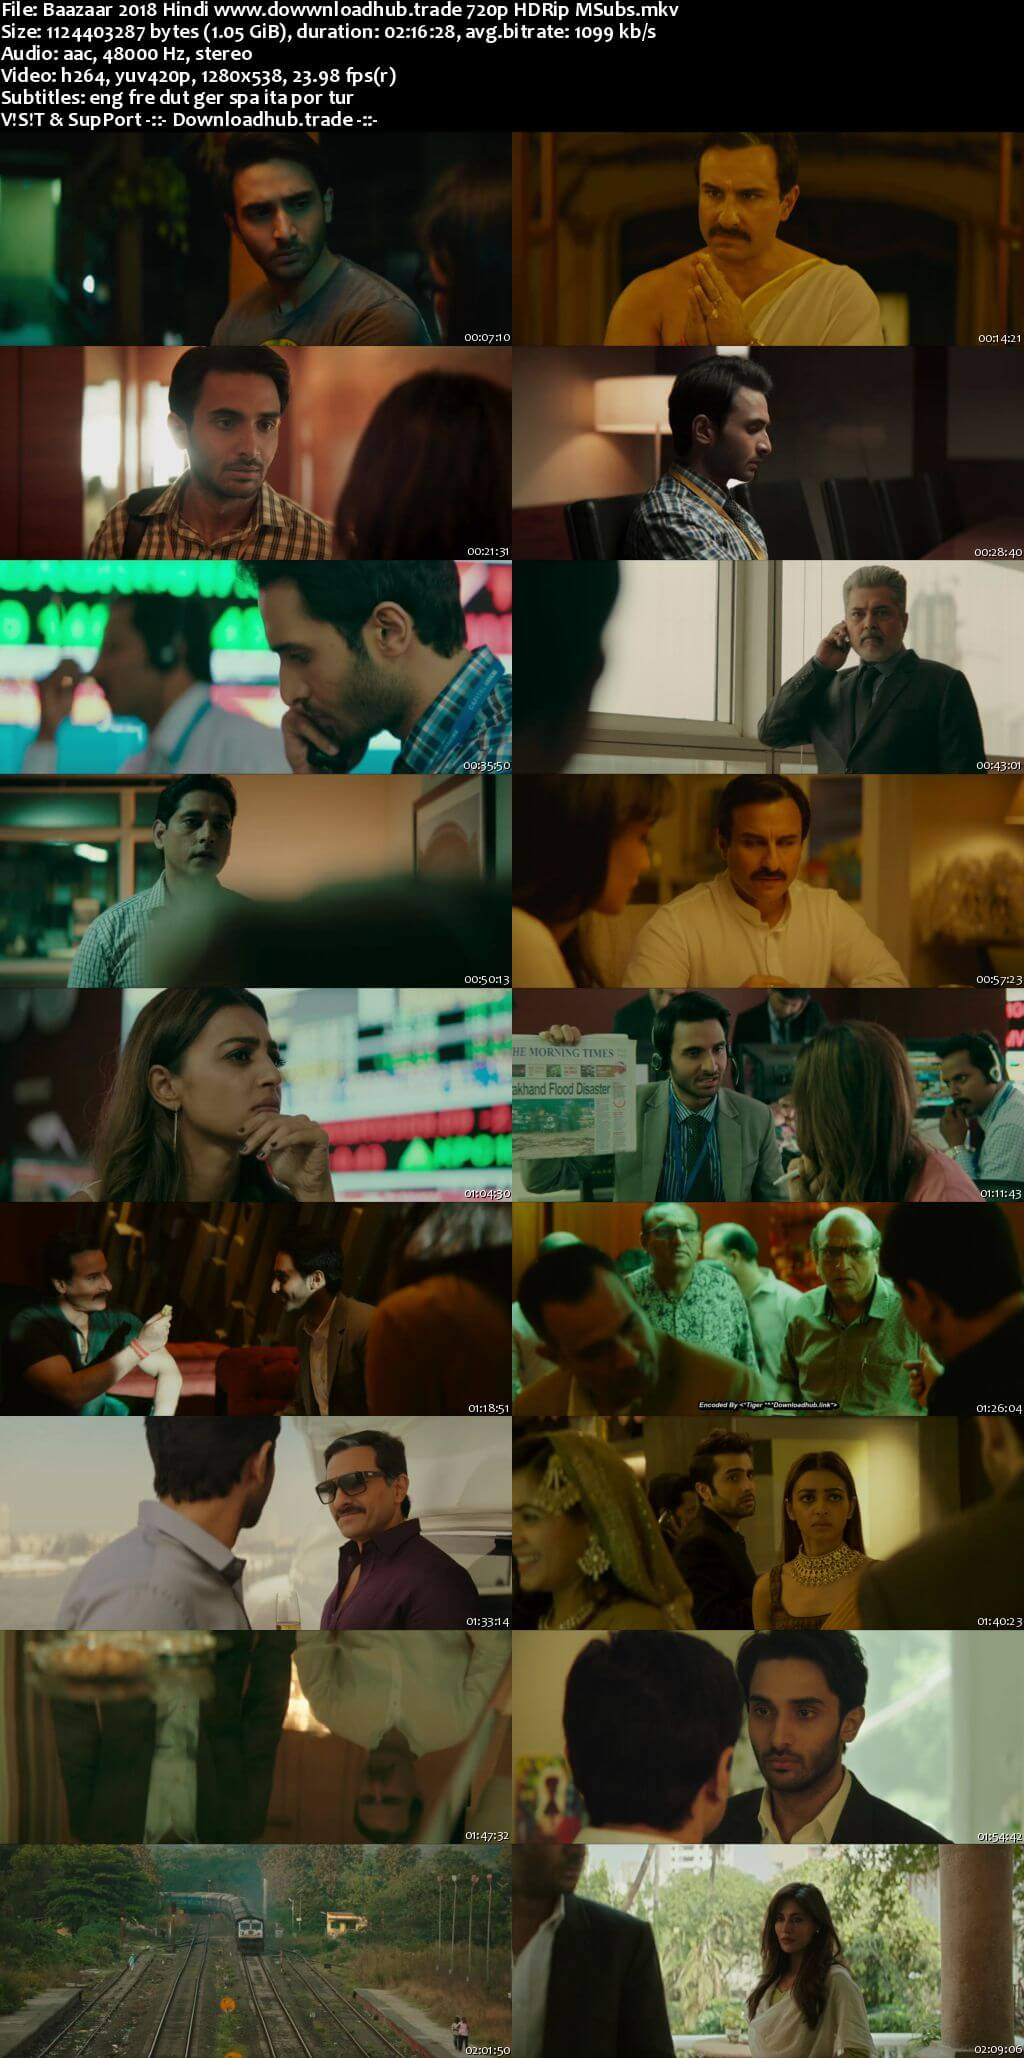 Baazaar 2018 Hindi 720p HDRip MSubs